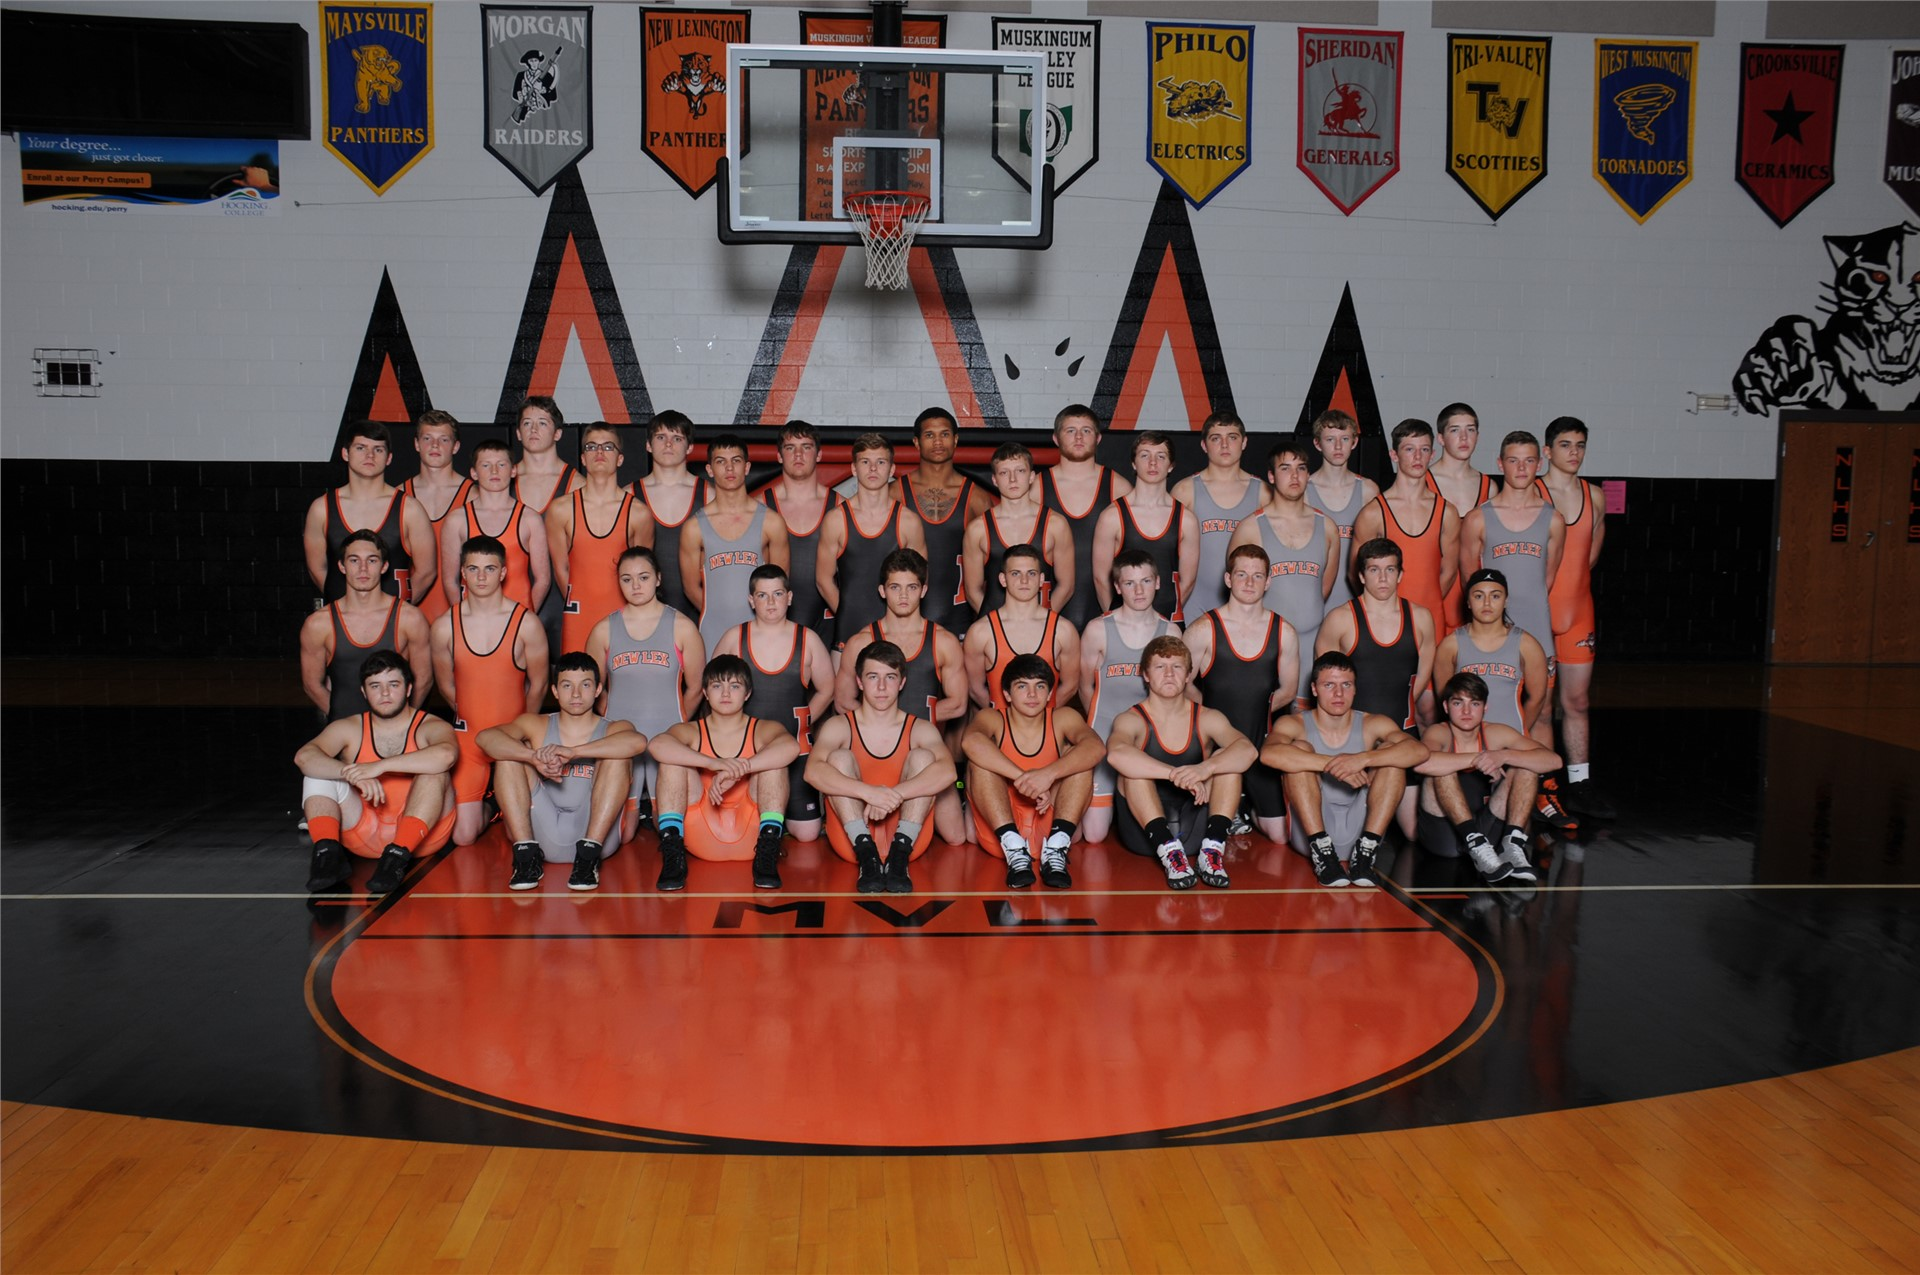 2016-17 PANTHER WRESTLING